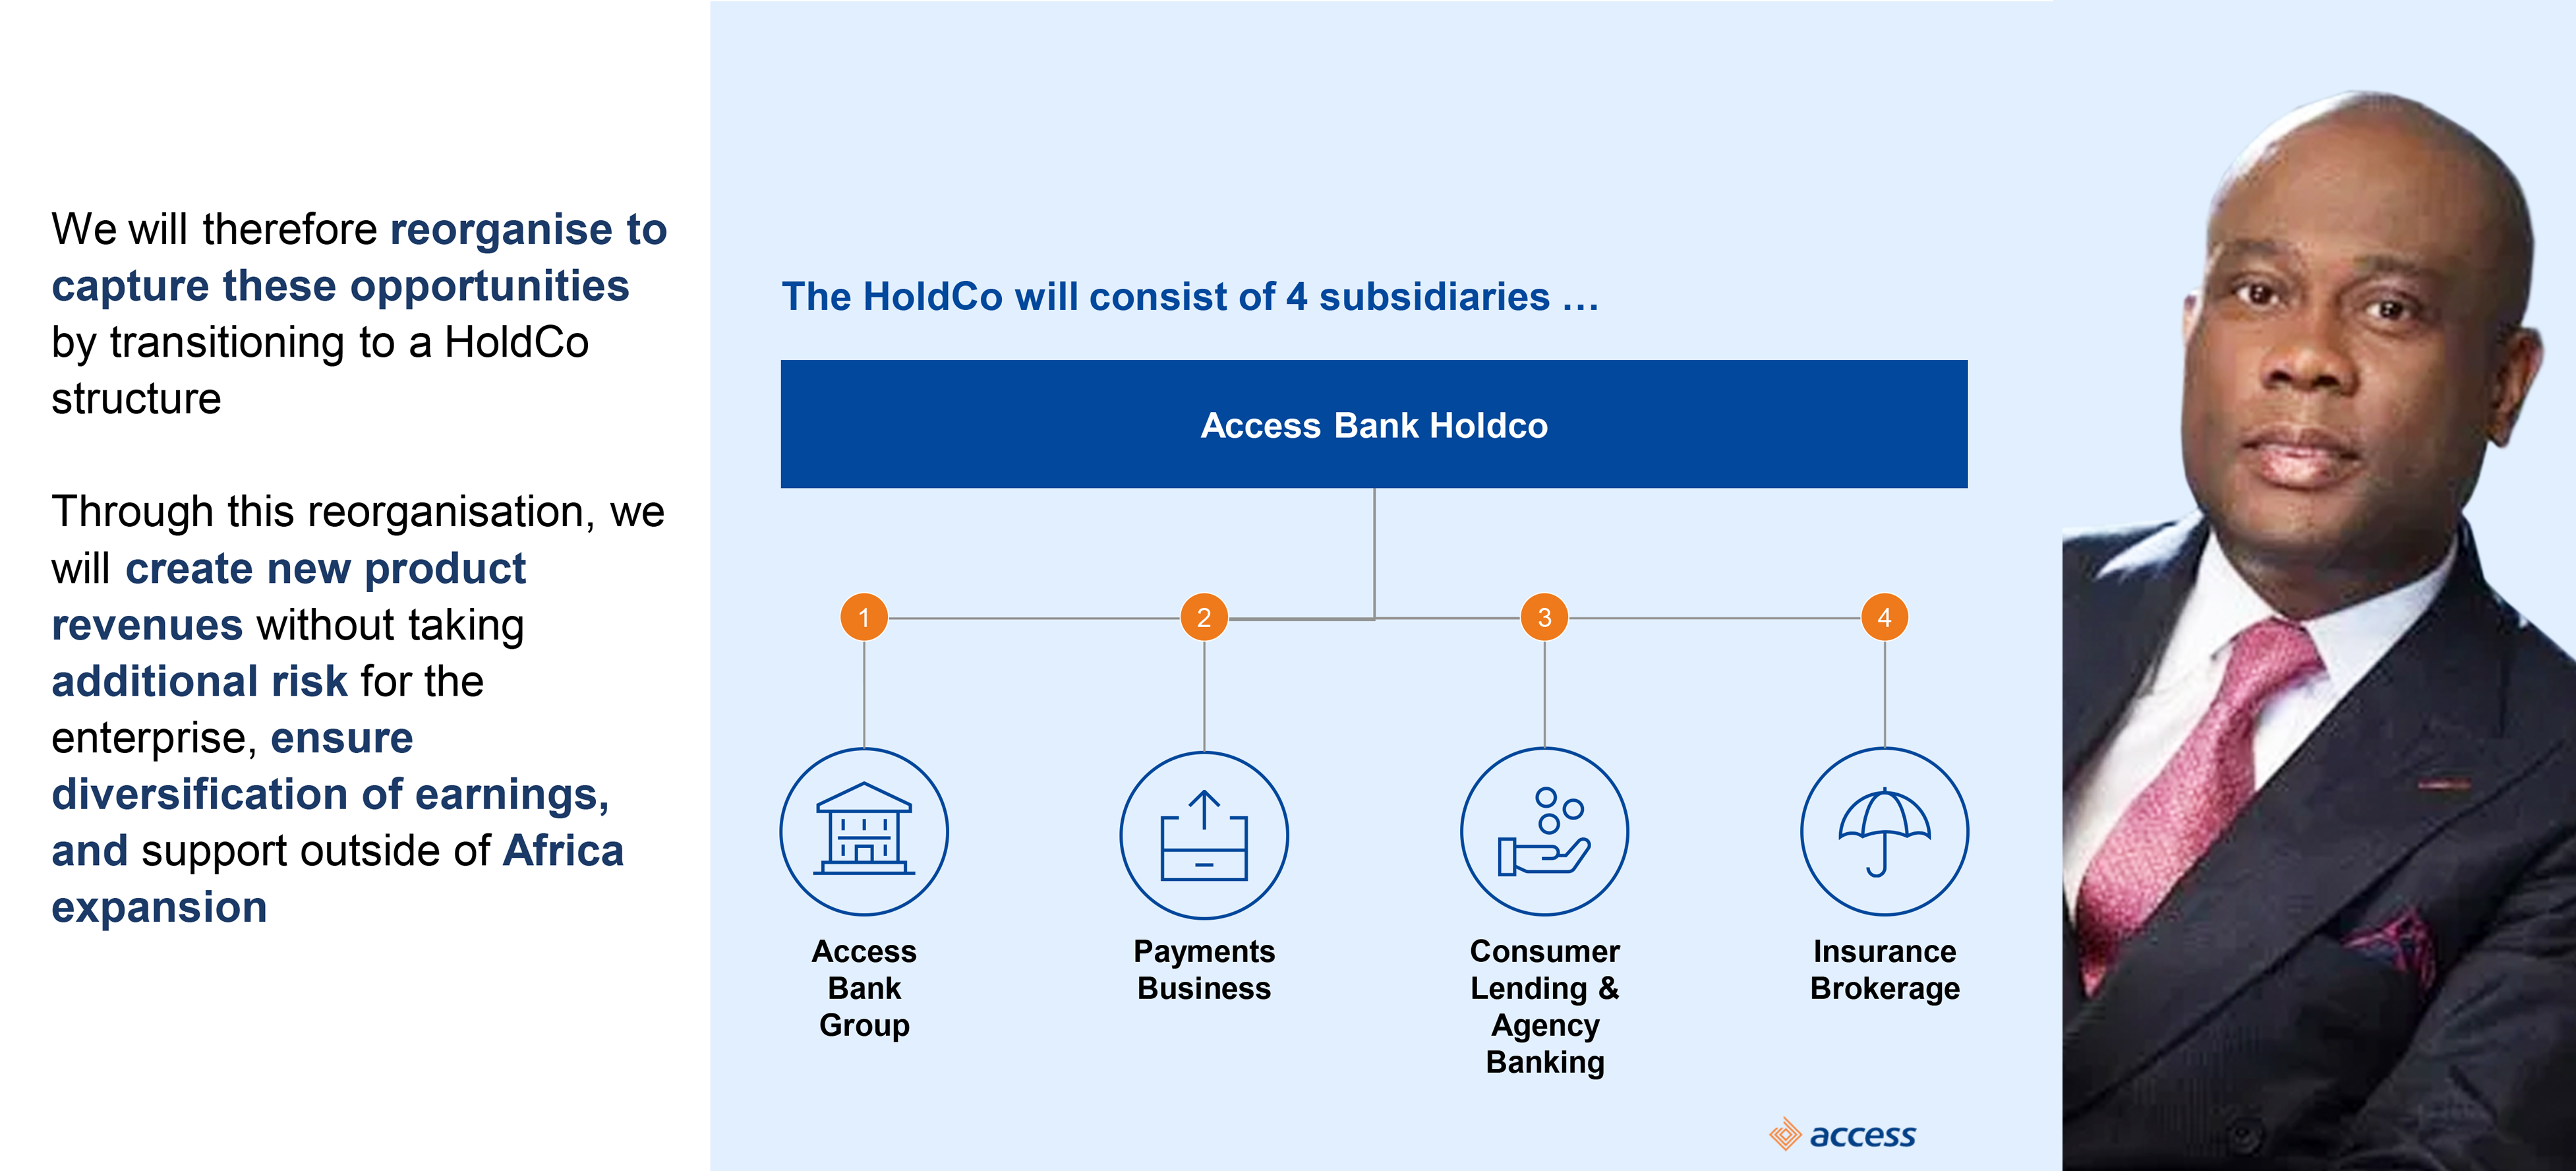 Access Bank unfolds ambitious expansion into Africa, global markets leveraging HoldCo structure